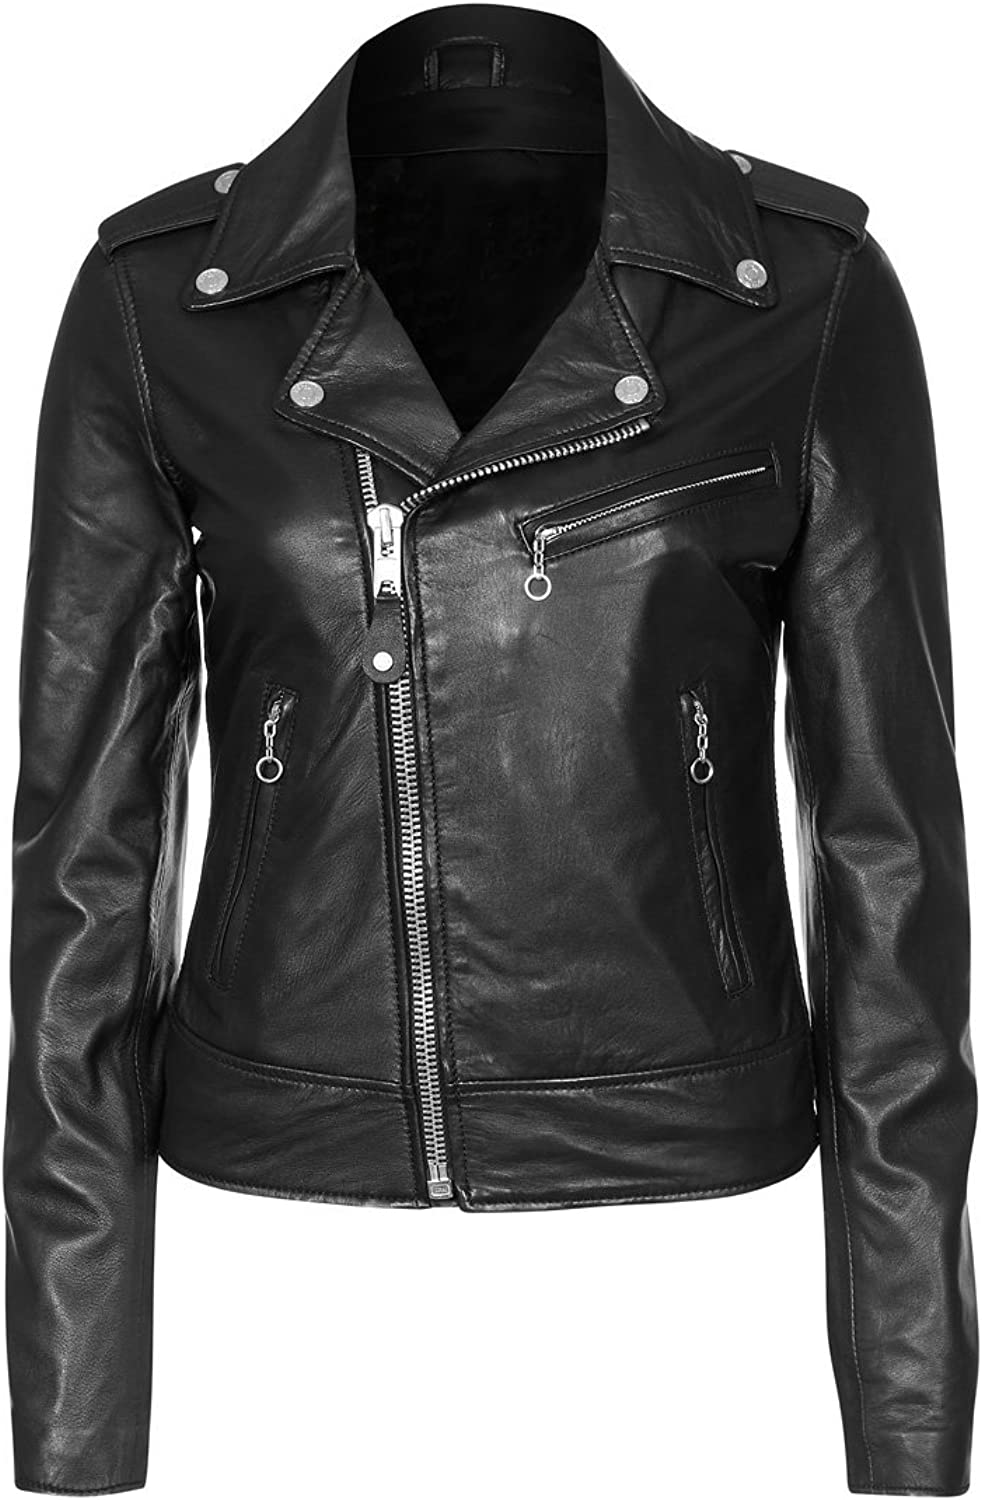 100% New Genuine Leather Lambskin Women Biker Motorcycle Jacket Ladies LTN250